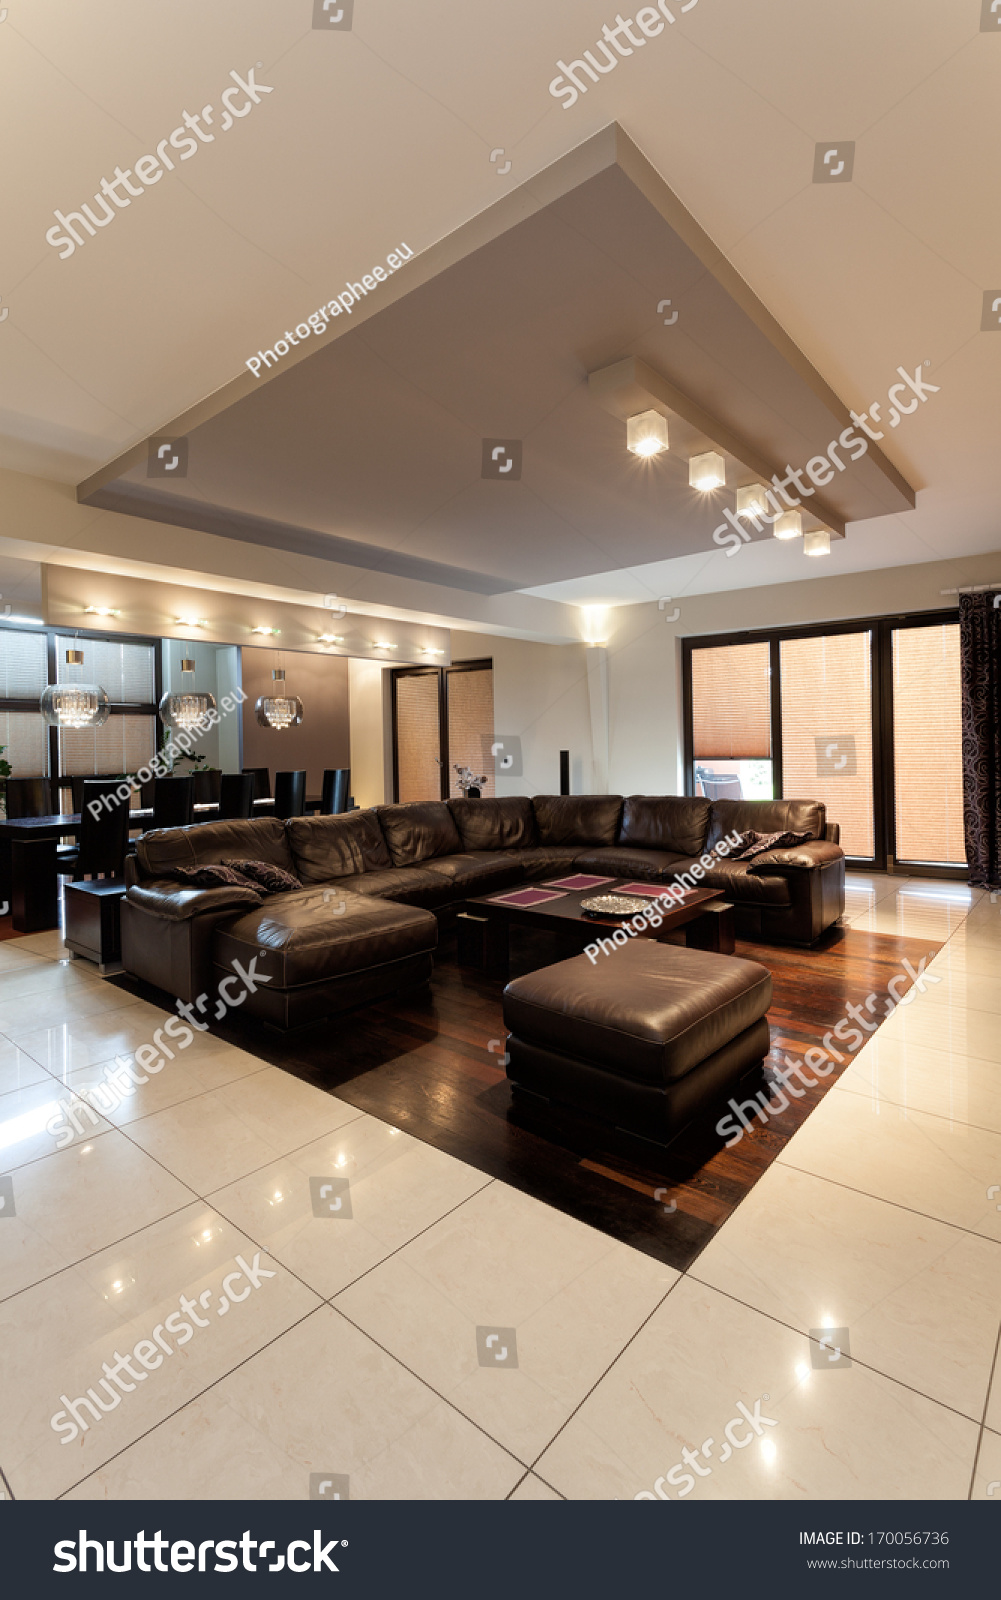 Big Comfy Brown Leather Sofa Classy Stock Photo Edit Now 170056736